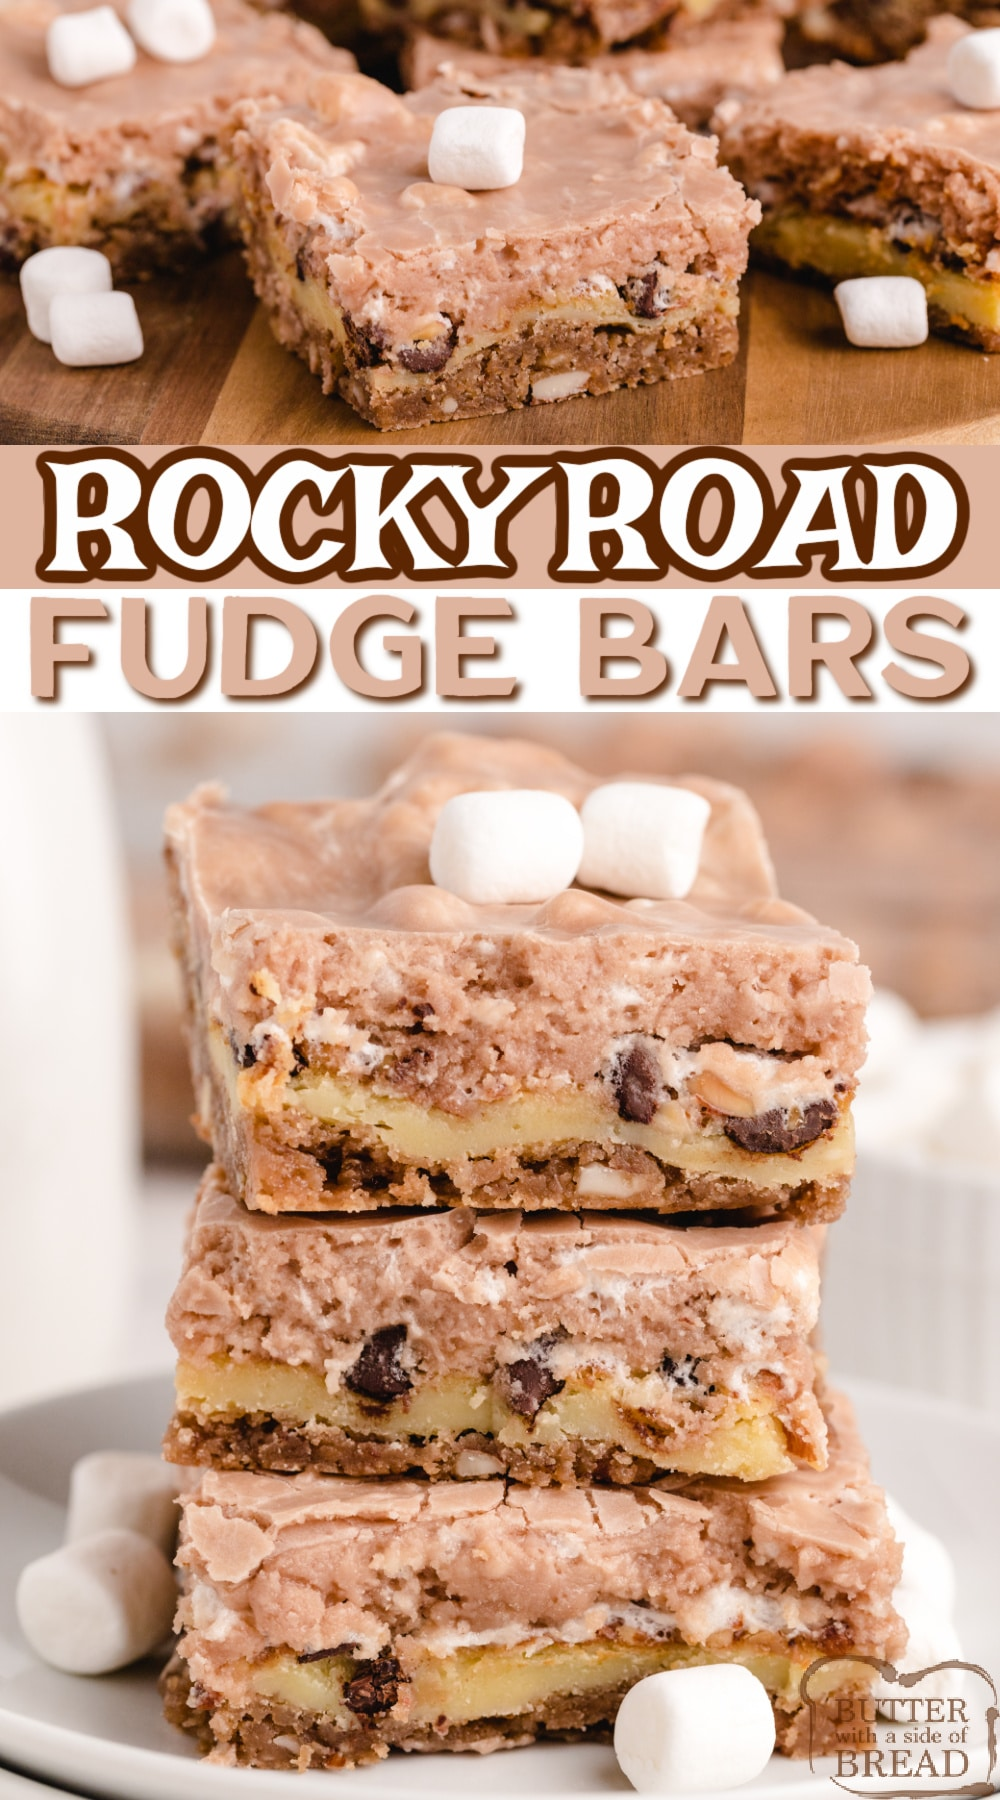 Rocky Road Fudge Bars made with three layers of chocolate, marshmallows and almonds. Delicious Rocky Road dessert recipe that is easy to make and tastes like a cross between cheesecake and fudge!